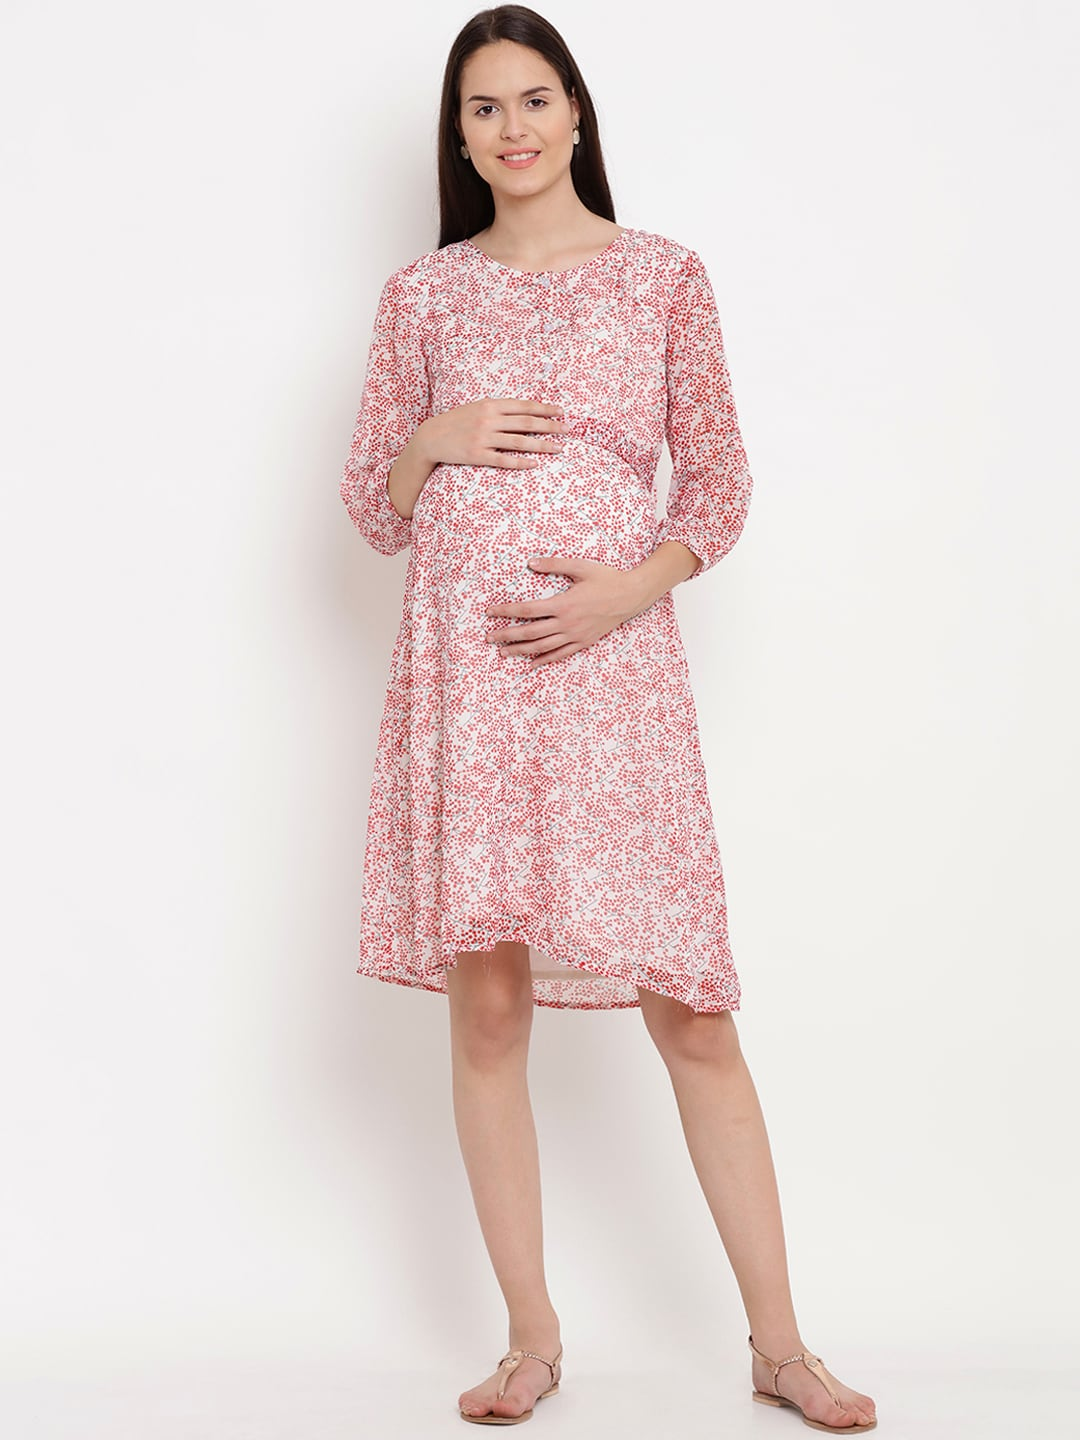 Dress maternity to wear to baby shower rare photo